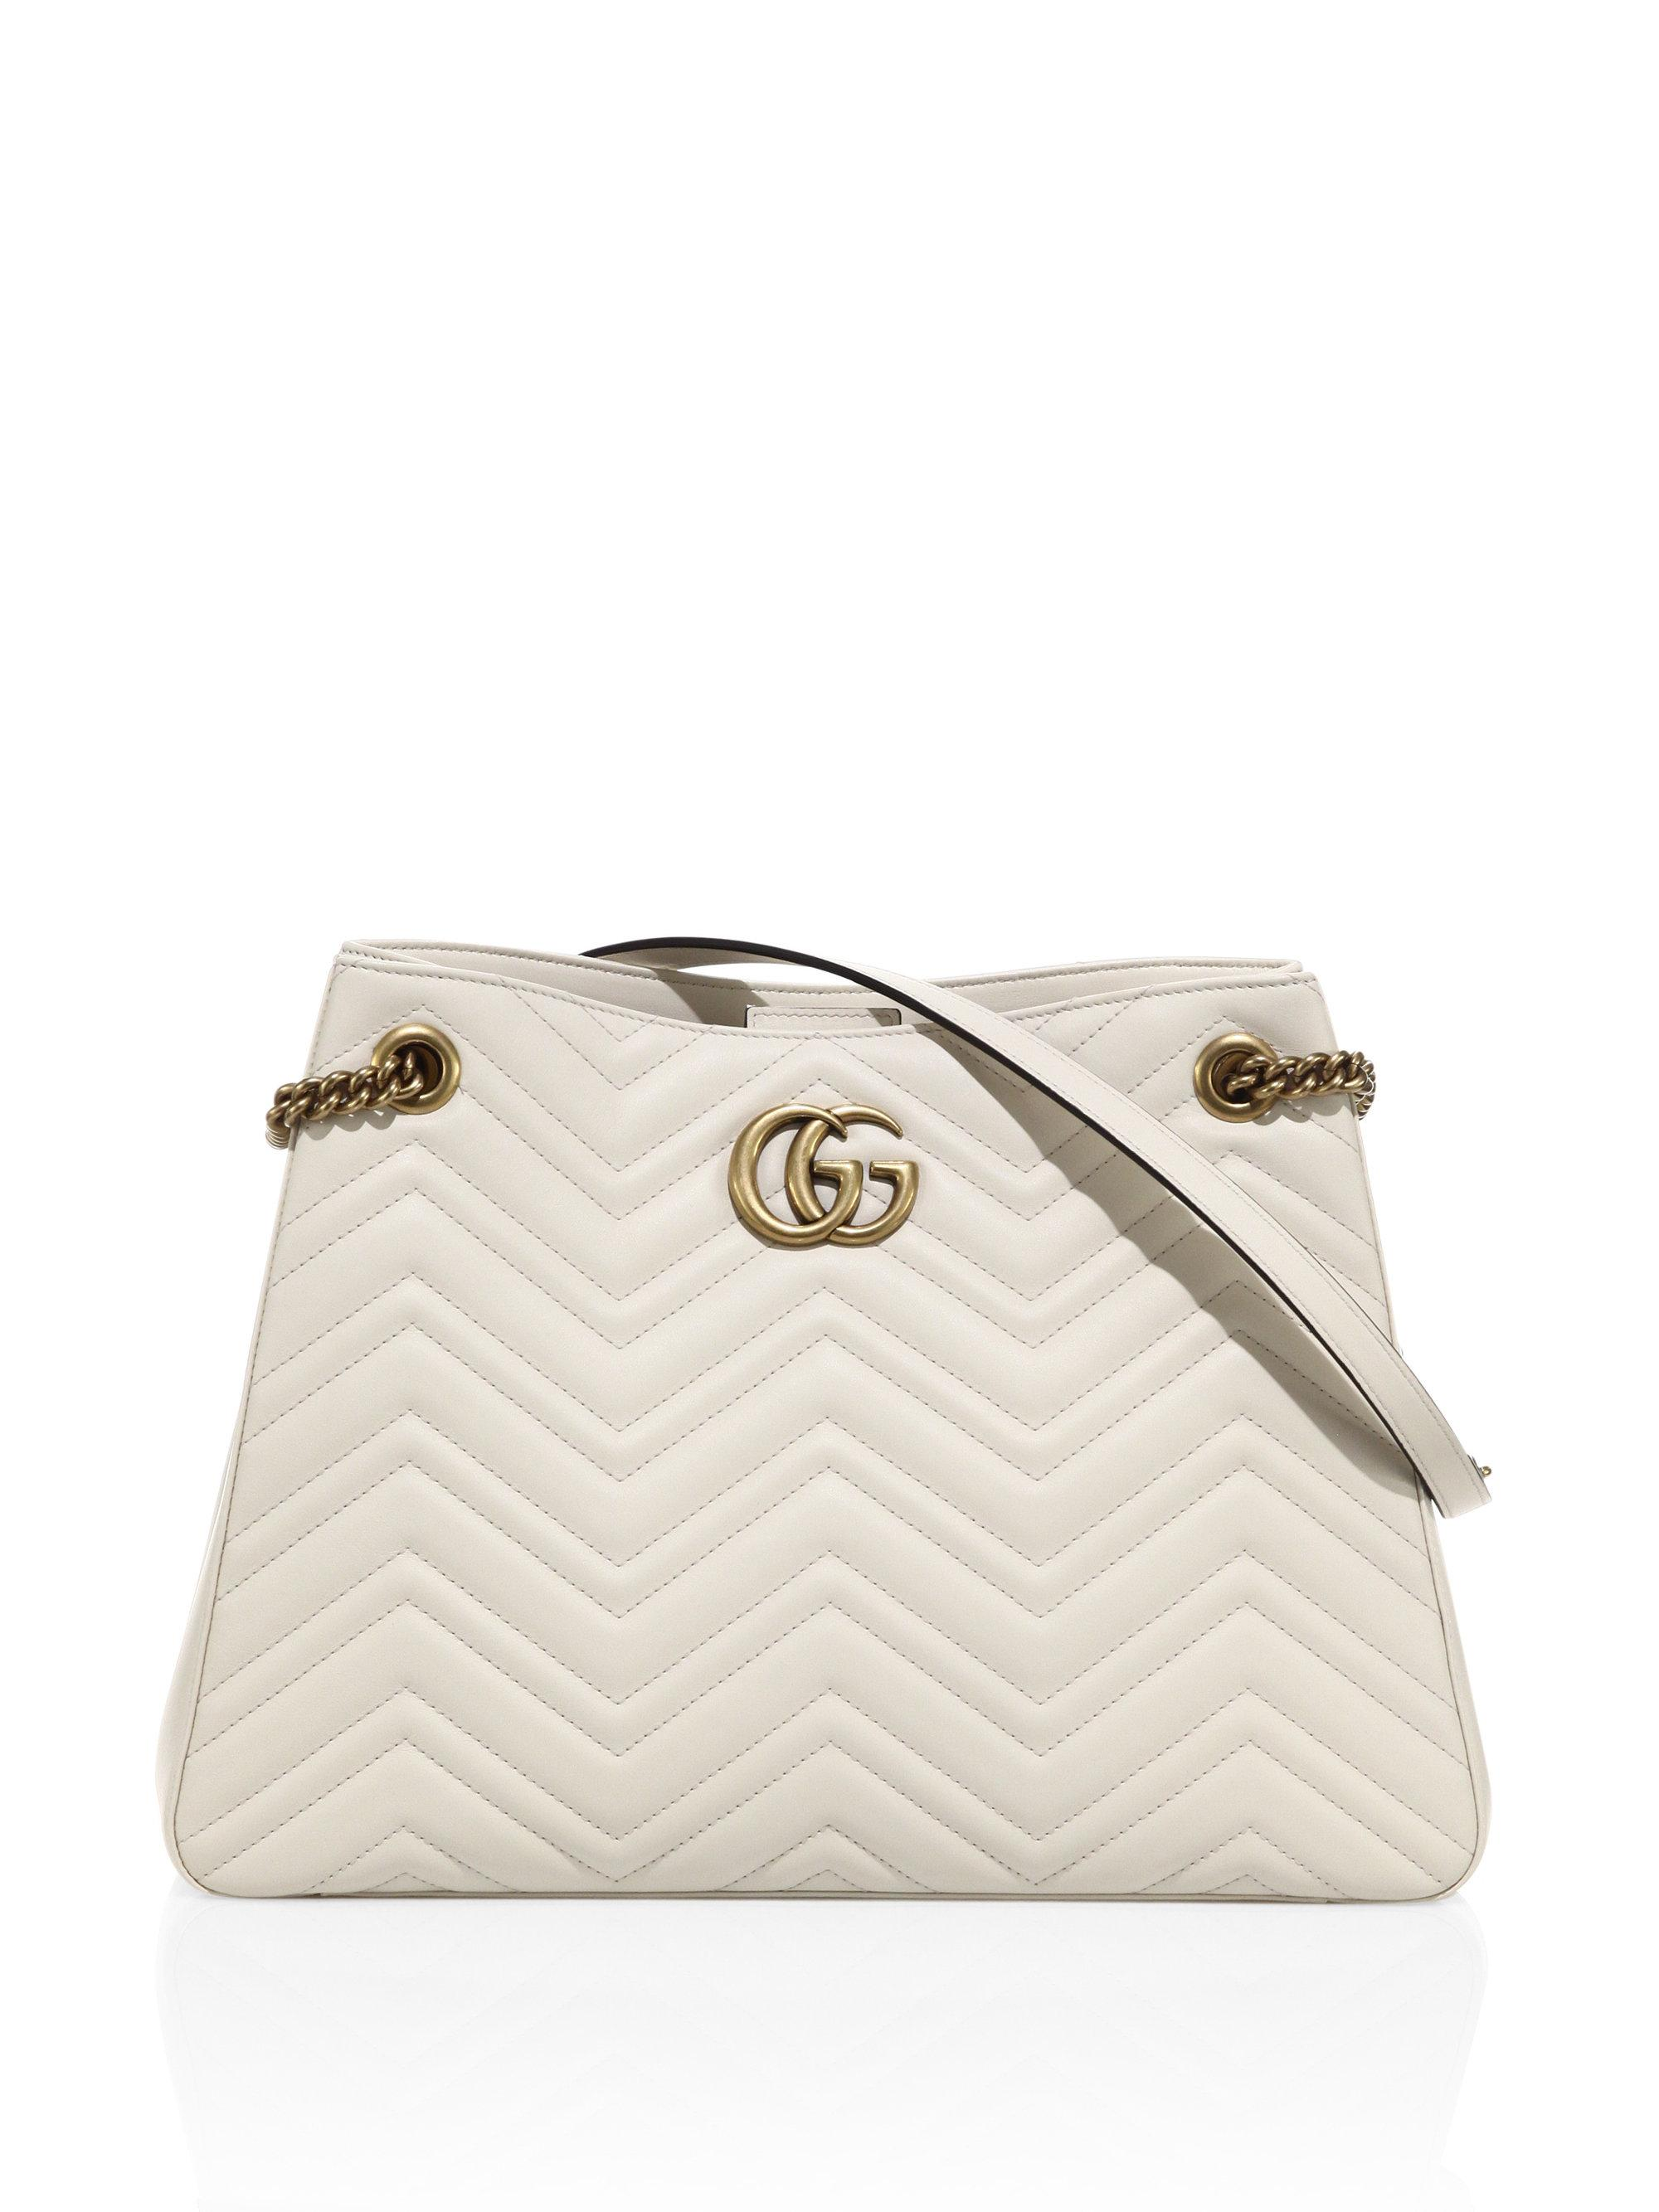 ab1226332f53e2 Lyst - Gucci Gg Marmont Matelasse Leather Shoulder Bag in White: